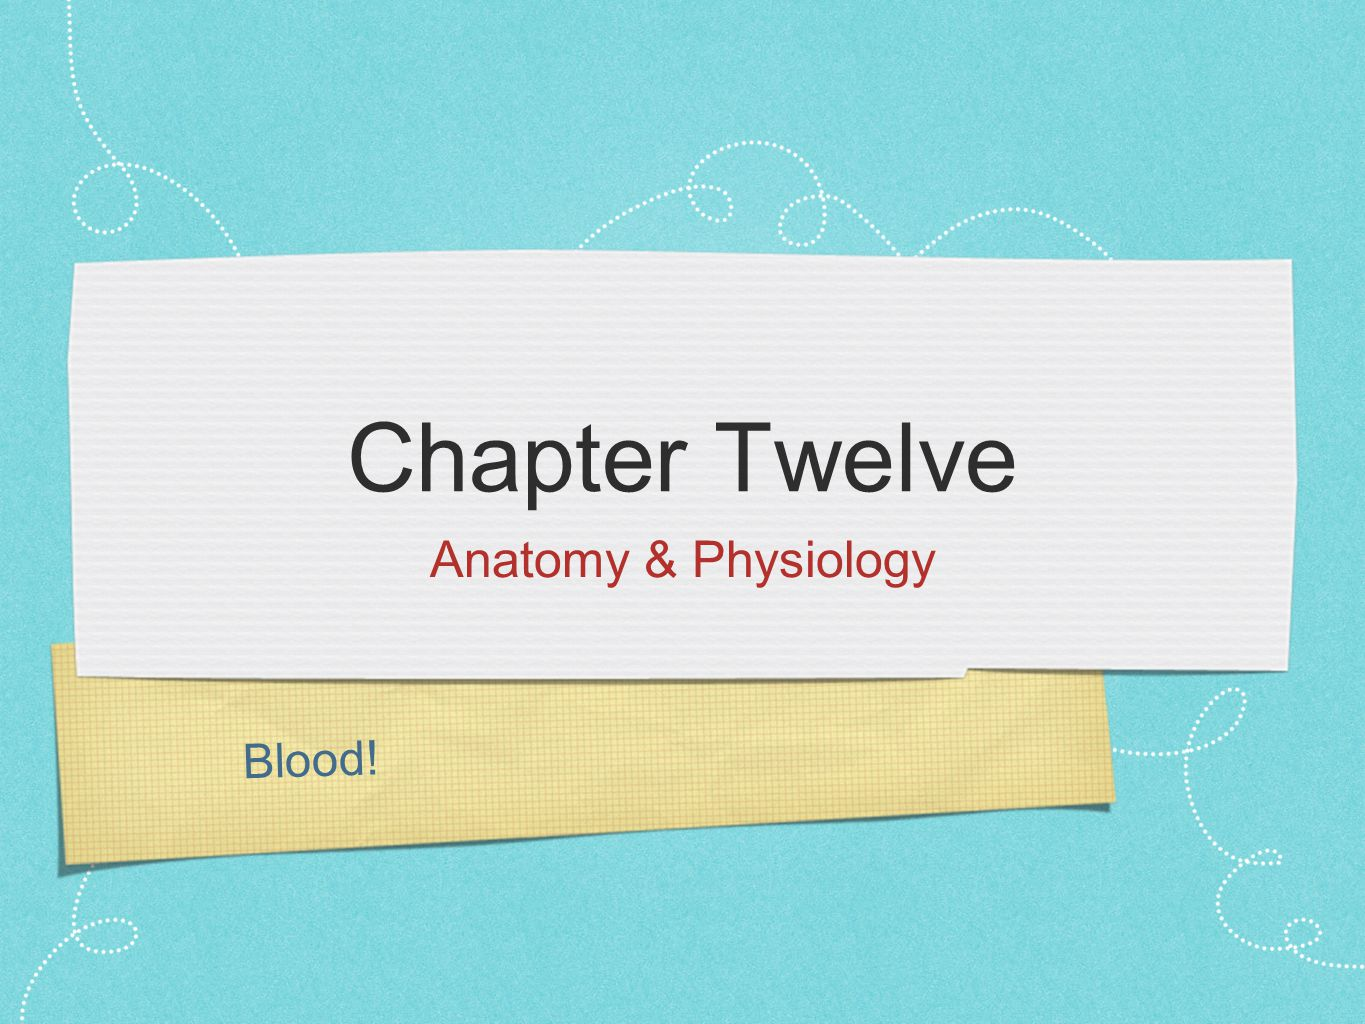 Blood! Chapter Twelve Anatomy & Physiology